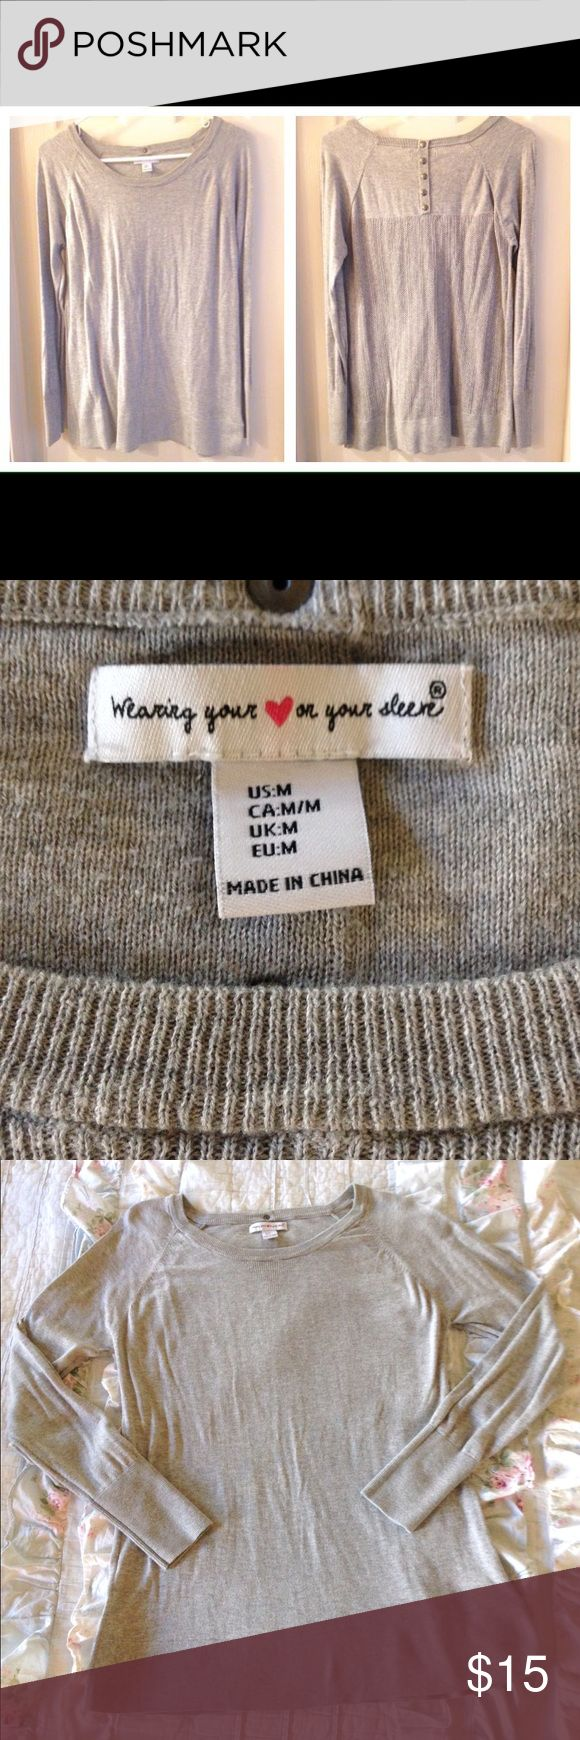 Crew neck sweater Sz M gray Derek Heart Nice grey sweater by Derek Heart, size medium. Crew neck. Cute details on the back. Derek Heart Sweaters Crew & Scoop Necks